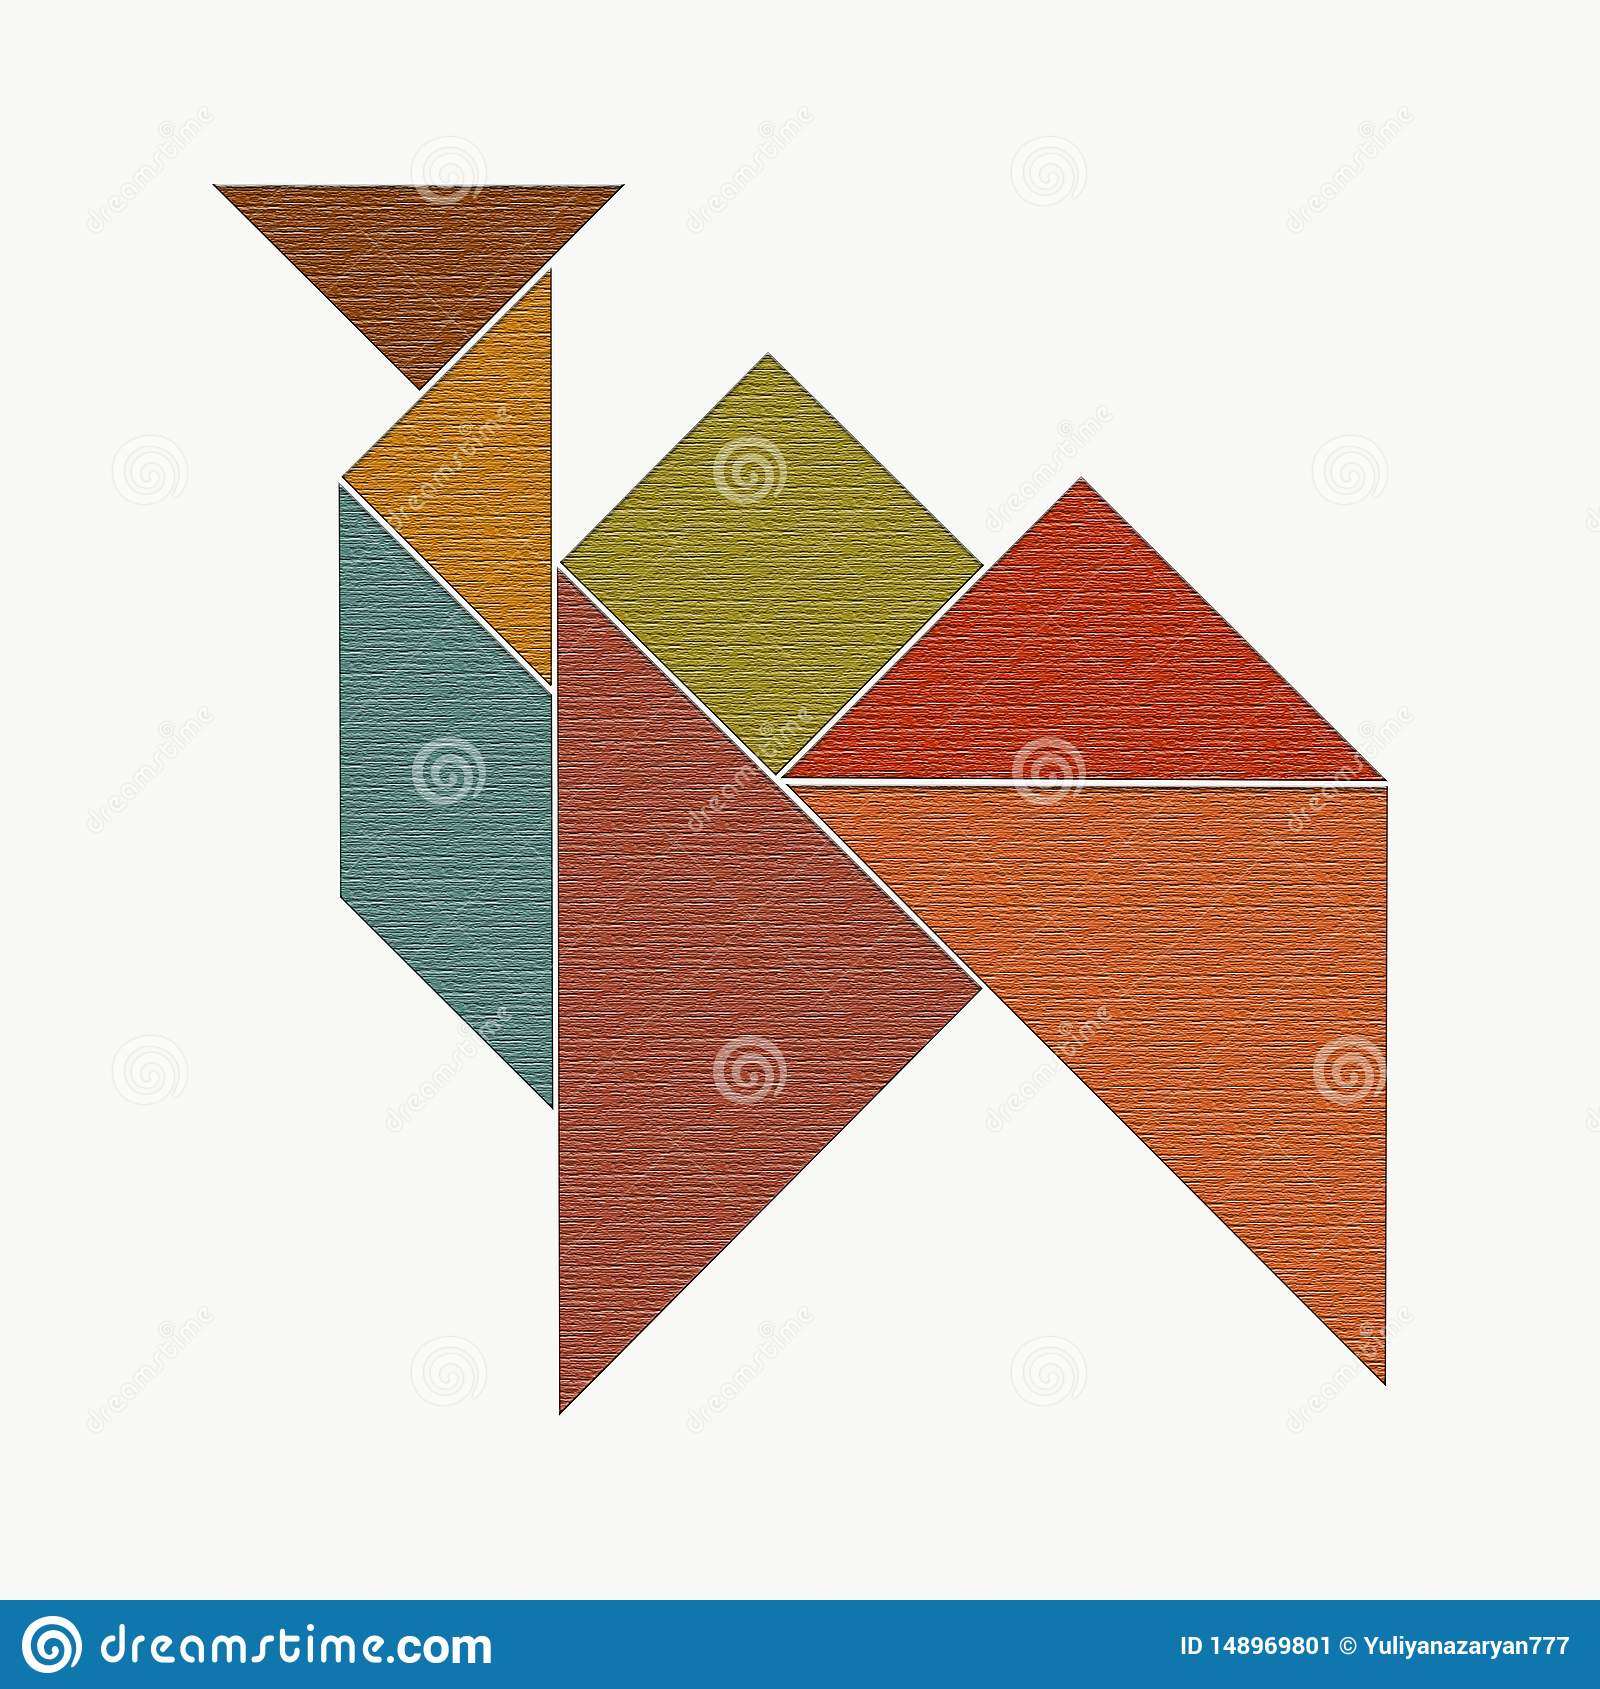 Camel From Wooden Pieces Of Tangram Puzzle Stock Image dedans Pièces Tangram